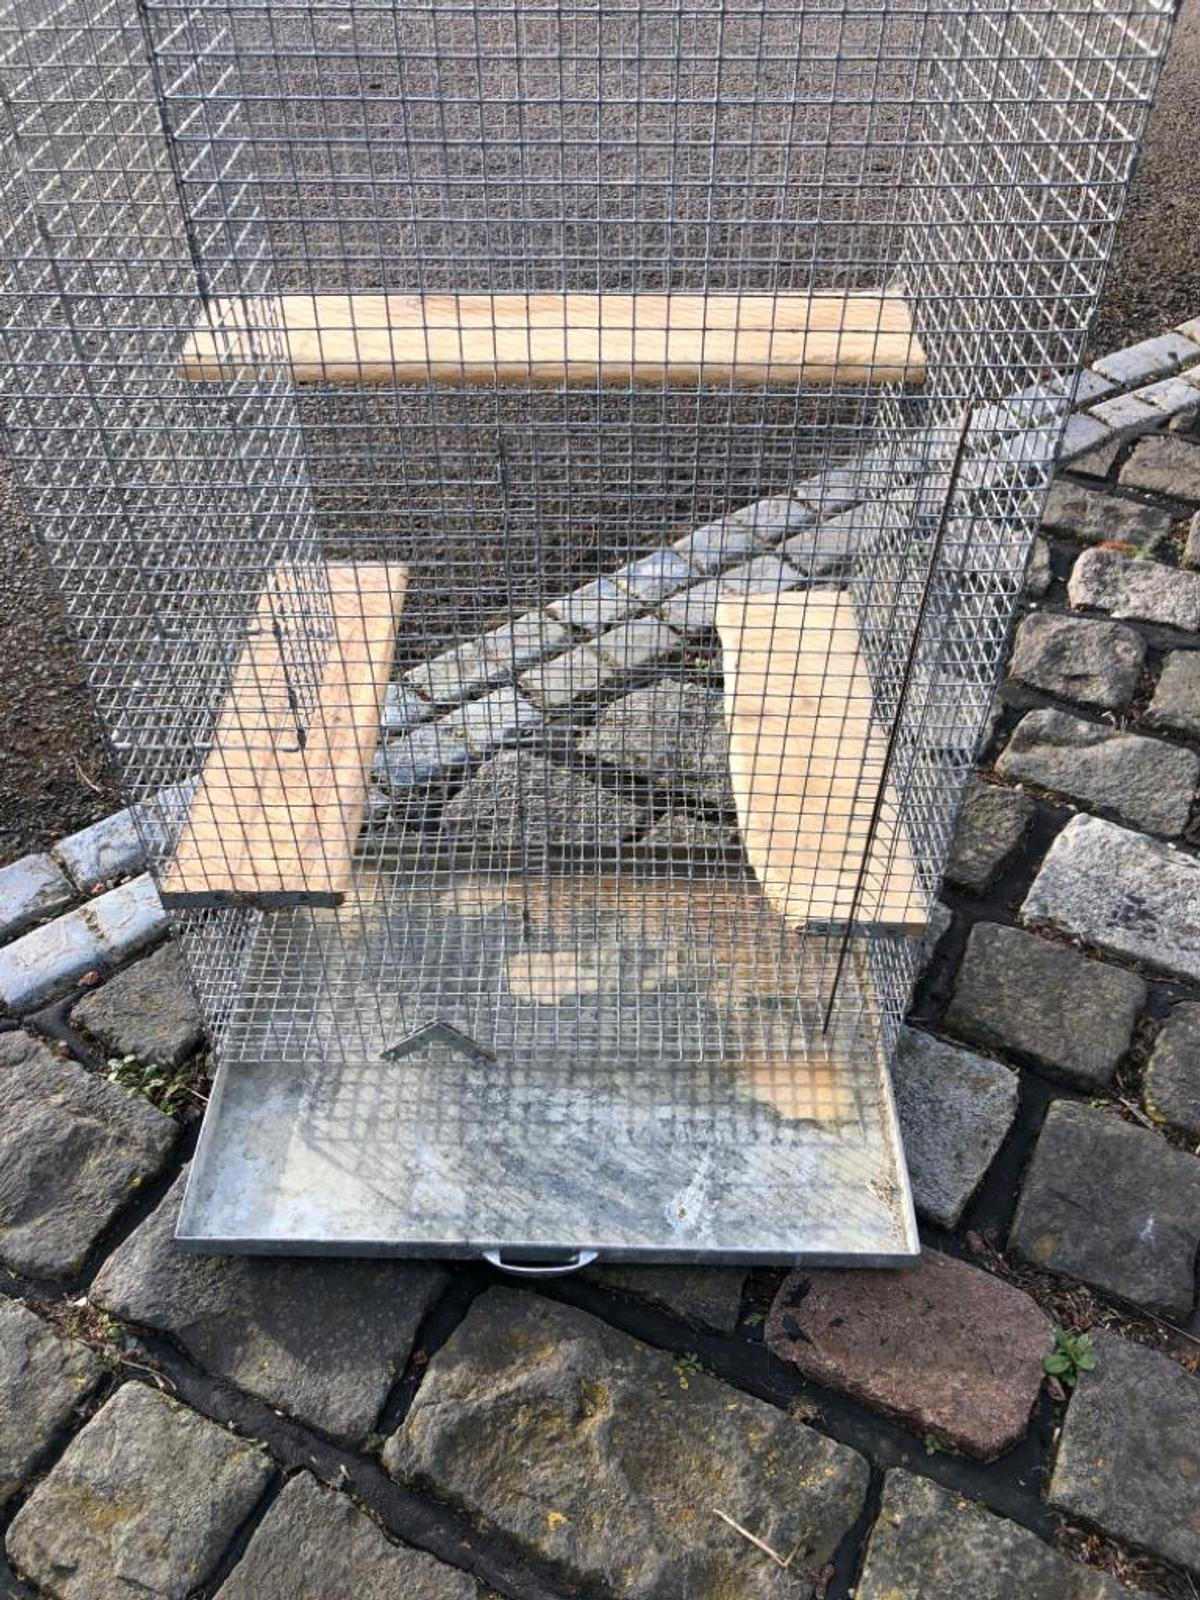 Animal cage with wooden perches and a pull out metal tray for cleaning. 3 available but each one has the perches in different places.